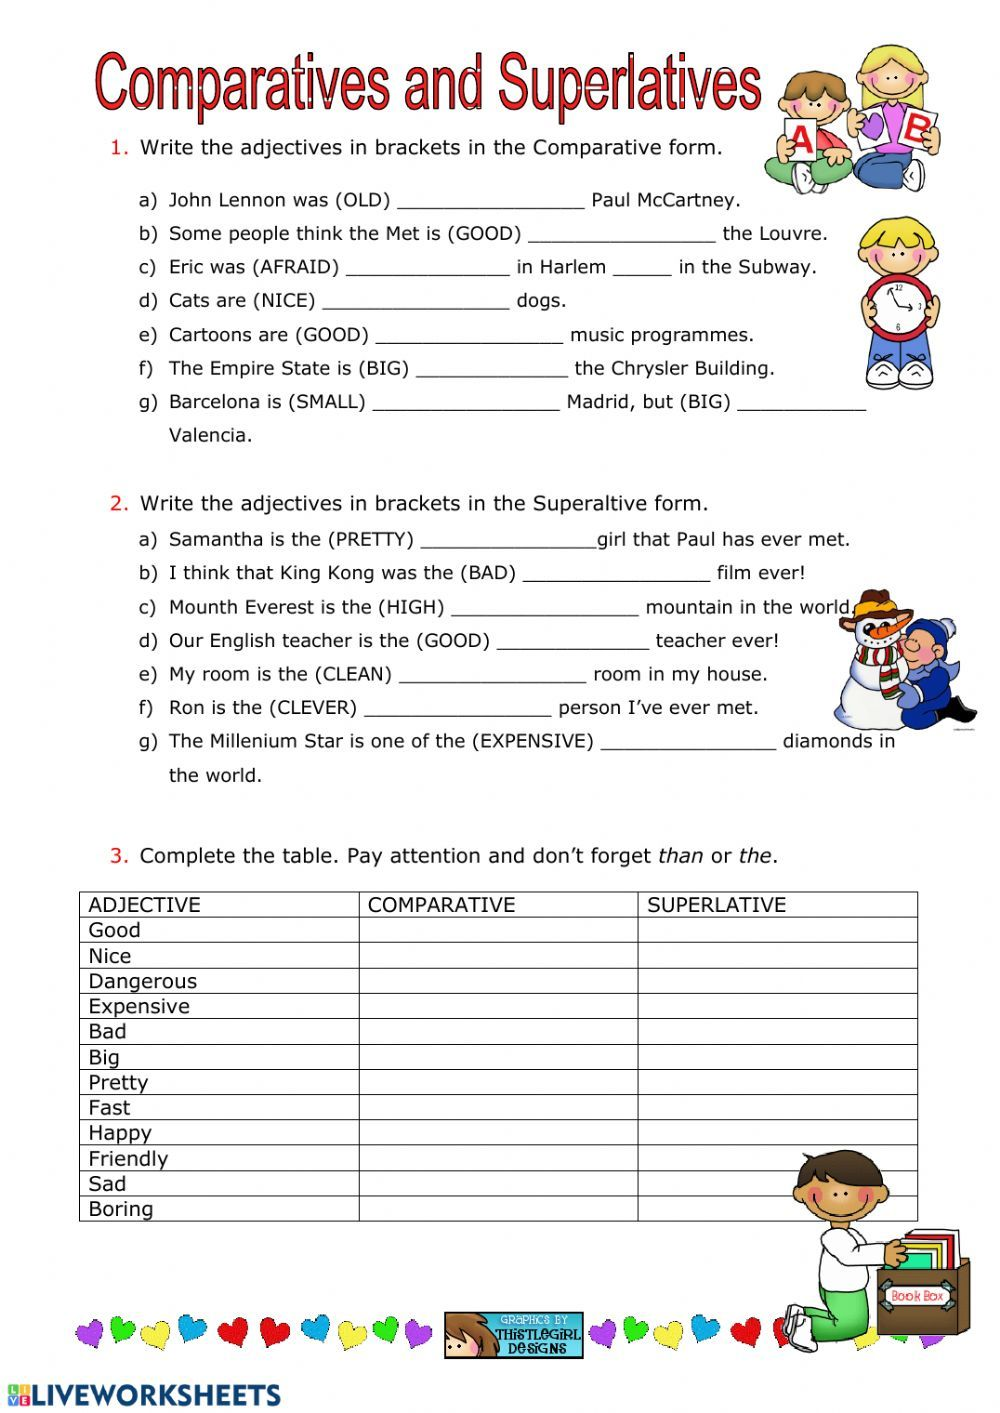 Degrees Of Comparison Of Adjectives Interactive And Downloadable Worksheet You Can Do The Exercises Onlin In 2020 Degrees Of Comparison Adjectives Adjective Worksheet